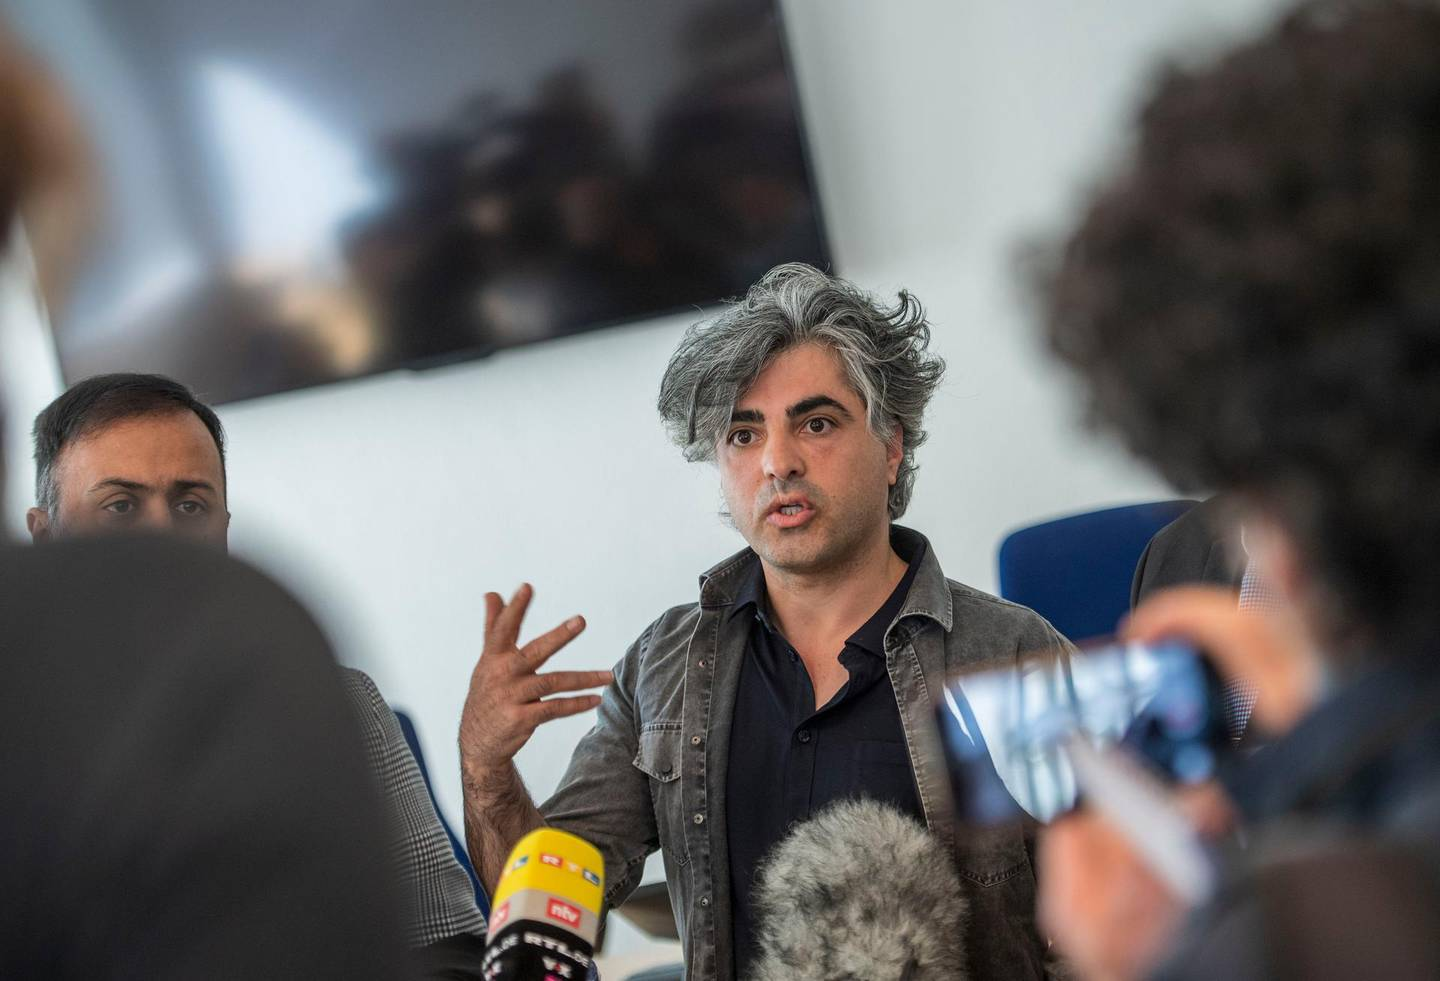 Co-plaintiff, Syrian Oscar-nominated filmmaker Feras Fayyad answers journalists' questions outside the courtroom during a break in a trial against two Syrian defendants accused of state-sponsored torture in Syria, on April 23, 2020 in Koblenz, western Germany. - Two alleged former Syrian intelligence officers go on trial, accused of crimes against humanity in the first court case worldwide over state-sponsored torture by Bashar al-Assad's regime. Prime suspect Anwar Raslan, an alleged former colonel in Syrian state security, stands accused of carrying out crimes against humanity while in charge of the Al-Khatib detention centre in Damascus between April 29, 2011 and September 7, 2012. Fellow defendant Eyad al-Gharib, 43, is accused of being an accomplice to crimes against humanity, having helped to arrest protesters and deliver them to Al-Khatib in the autumn of 2011. (Photo by Thomas Lohnes / AFP)